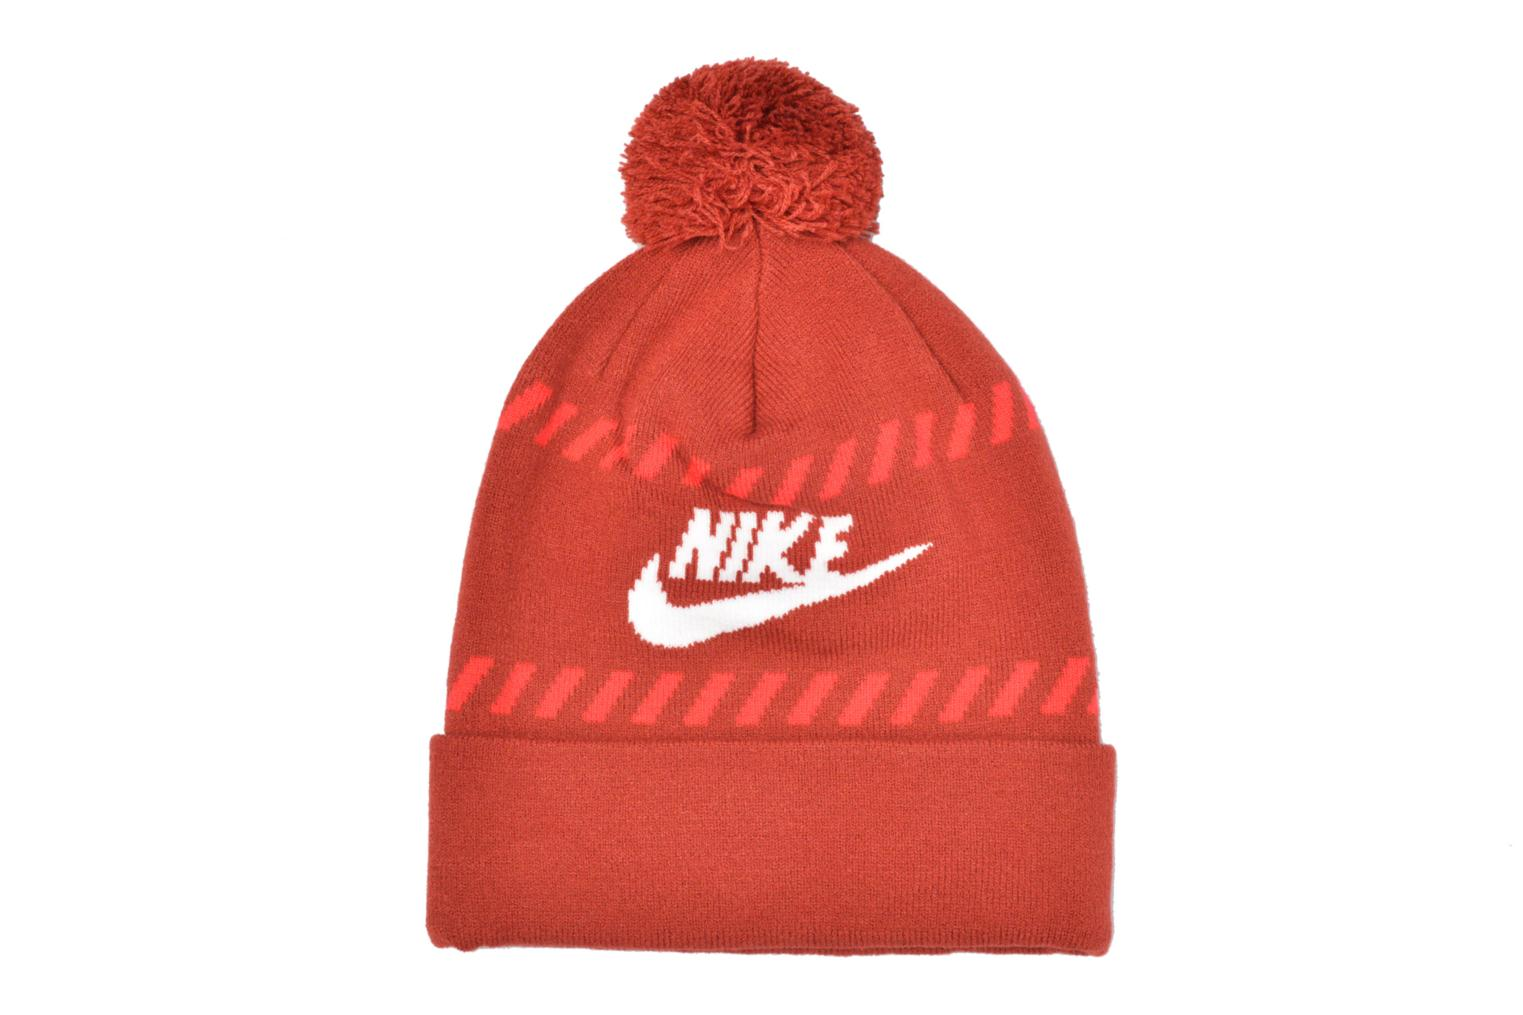 Divers Nike Futura Pom Beanie-Red Bonnet Rood detail